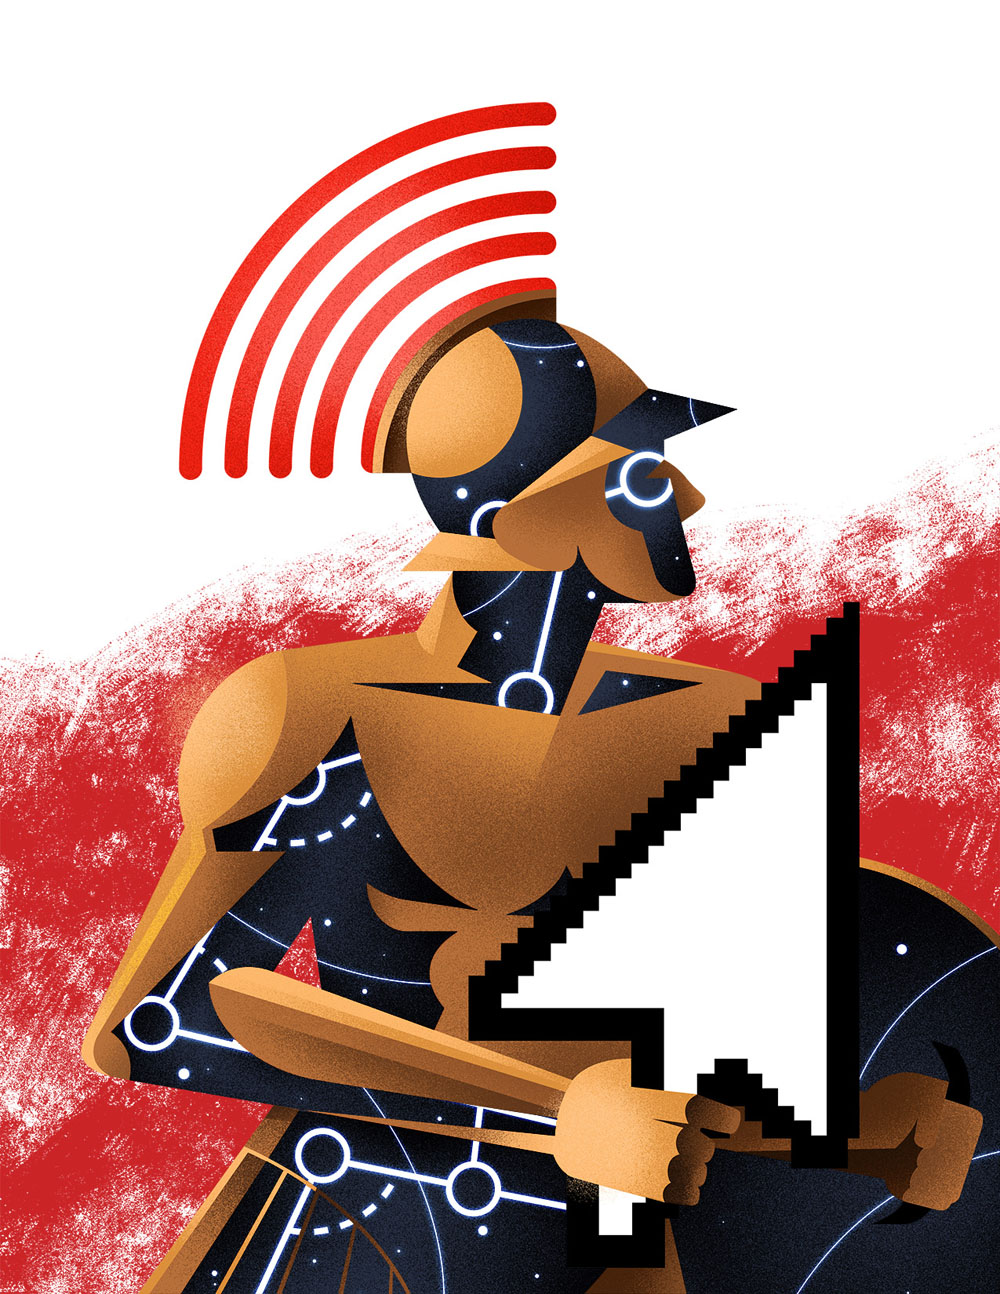 Spartan in Motion. Illustration by Dave Murray. Represented by i2i Art Inc.